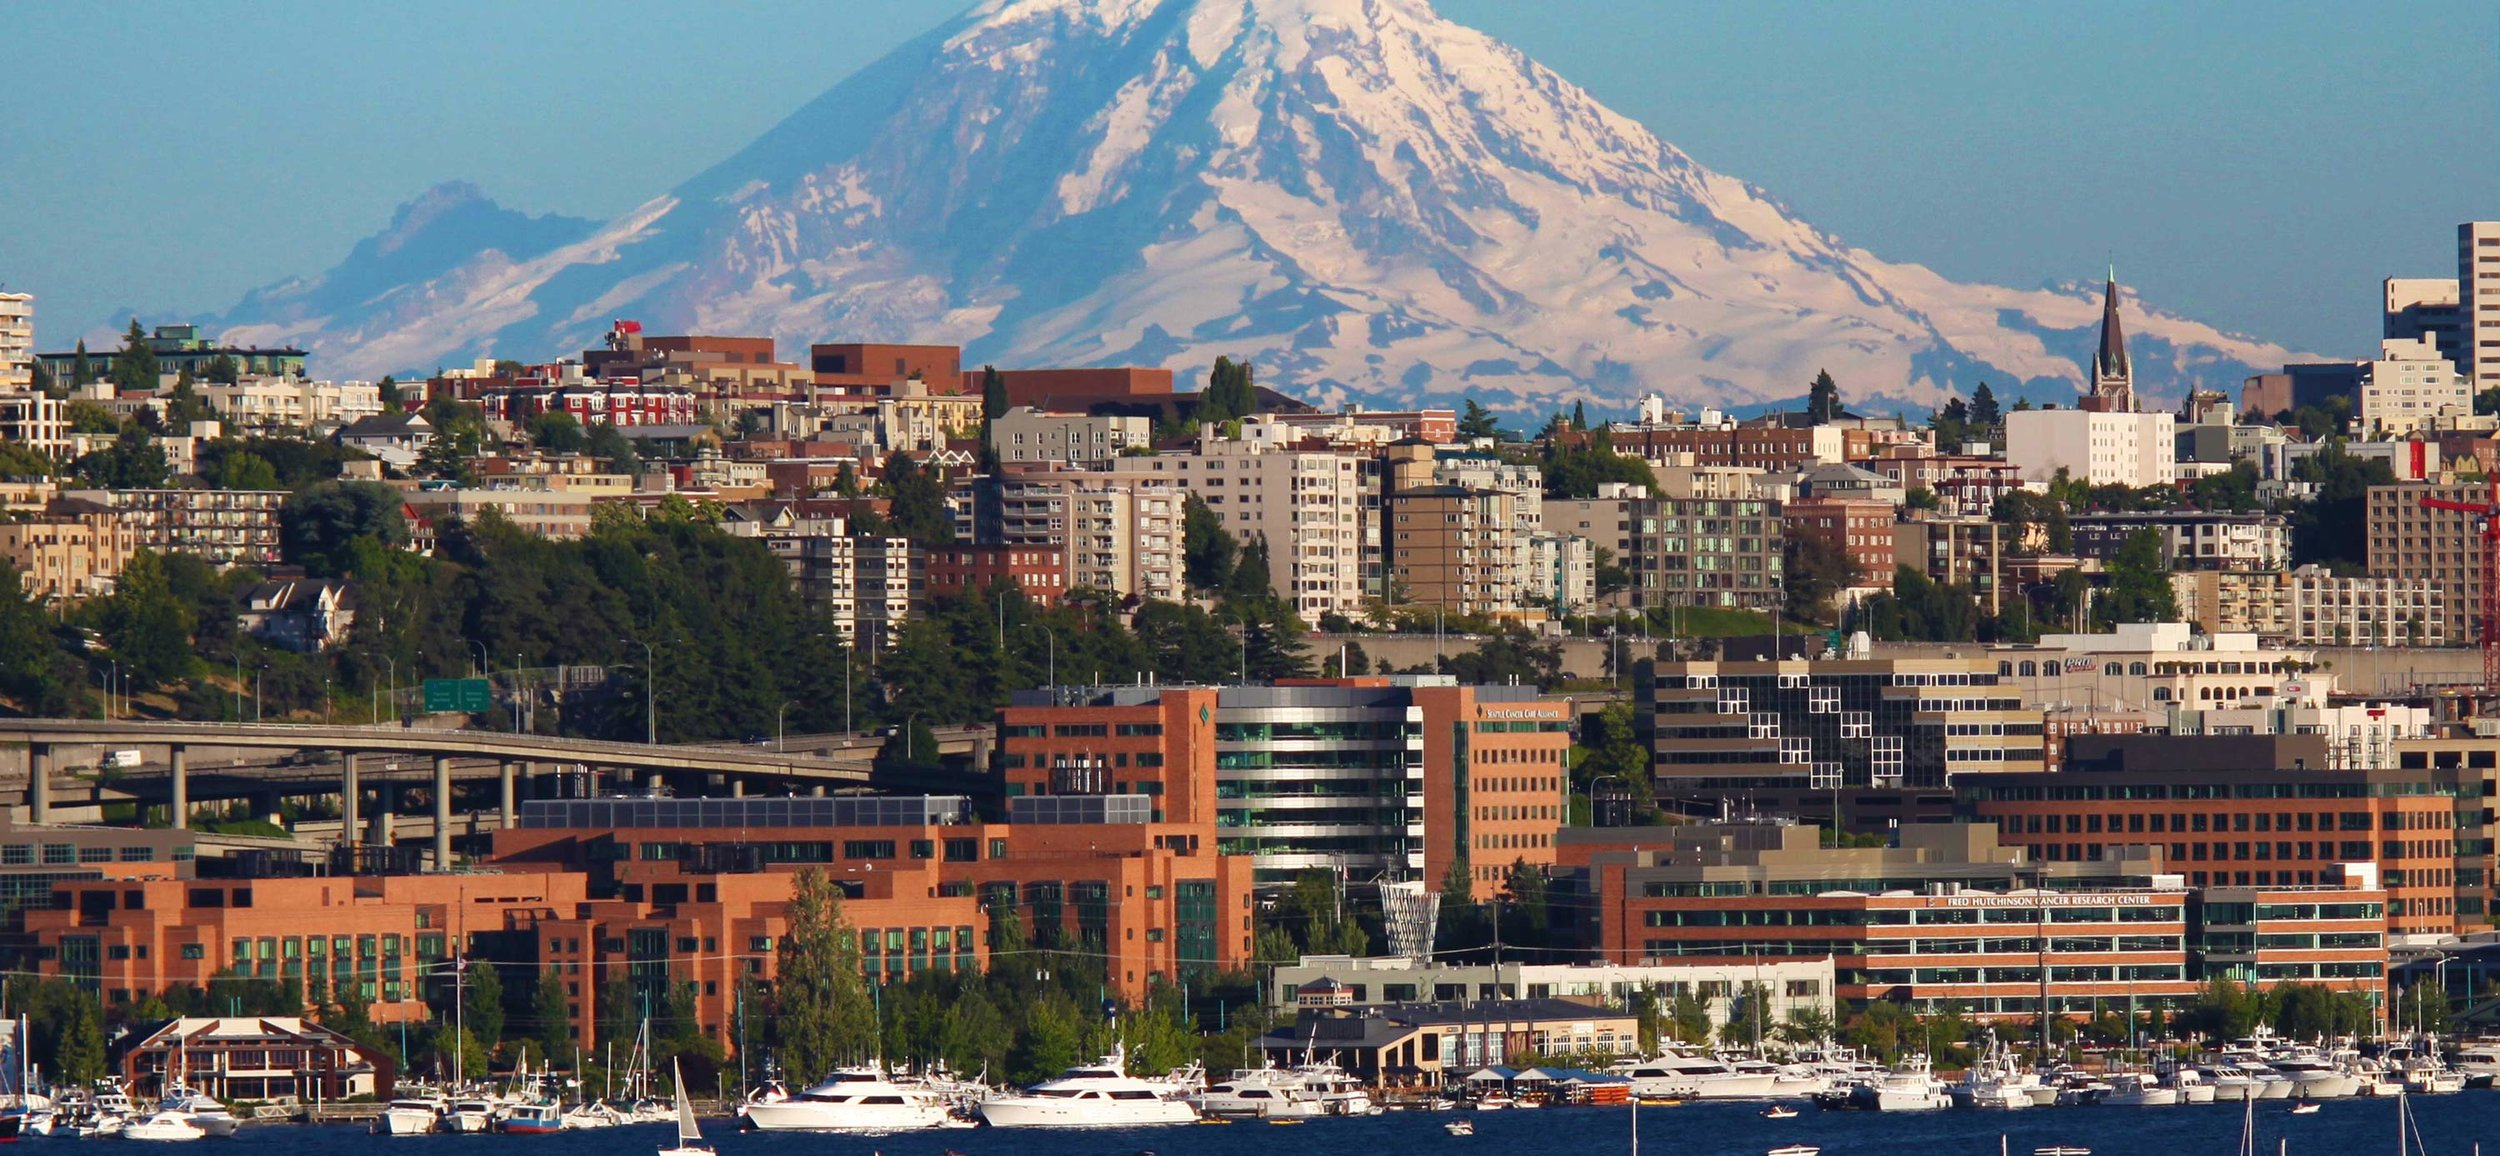 The Fred Hutchinson Cancer Research Center and Seattle Cancer Care Alliance in front of Mount Rainier. South Lake Union, Seattle, WA..